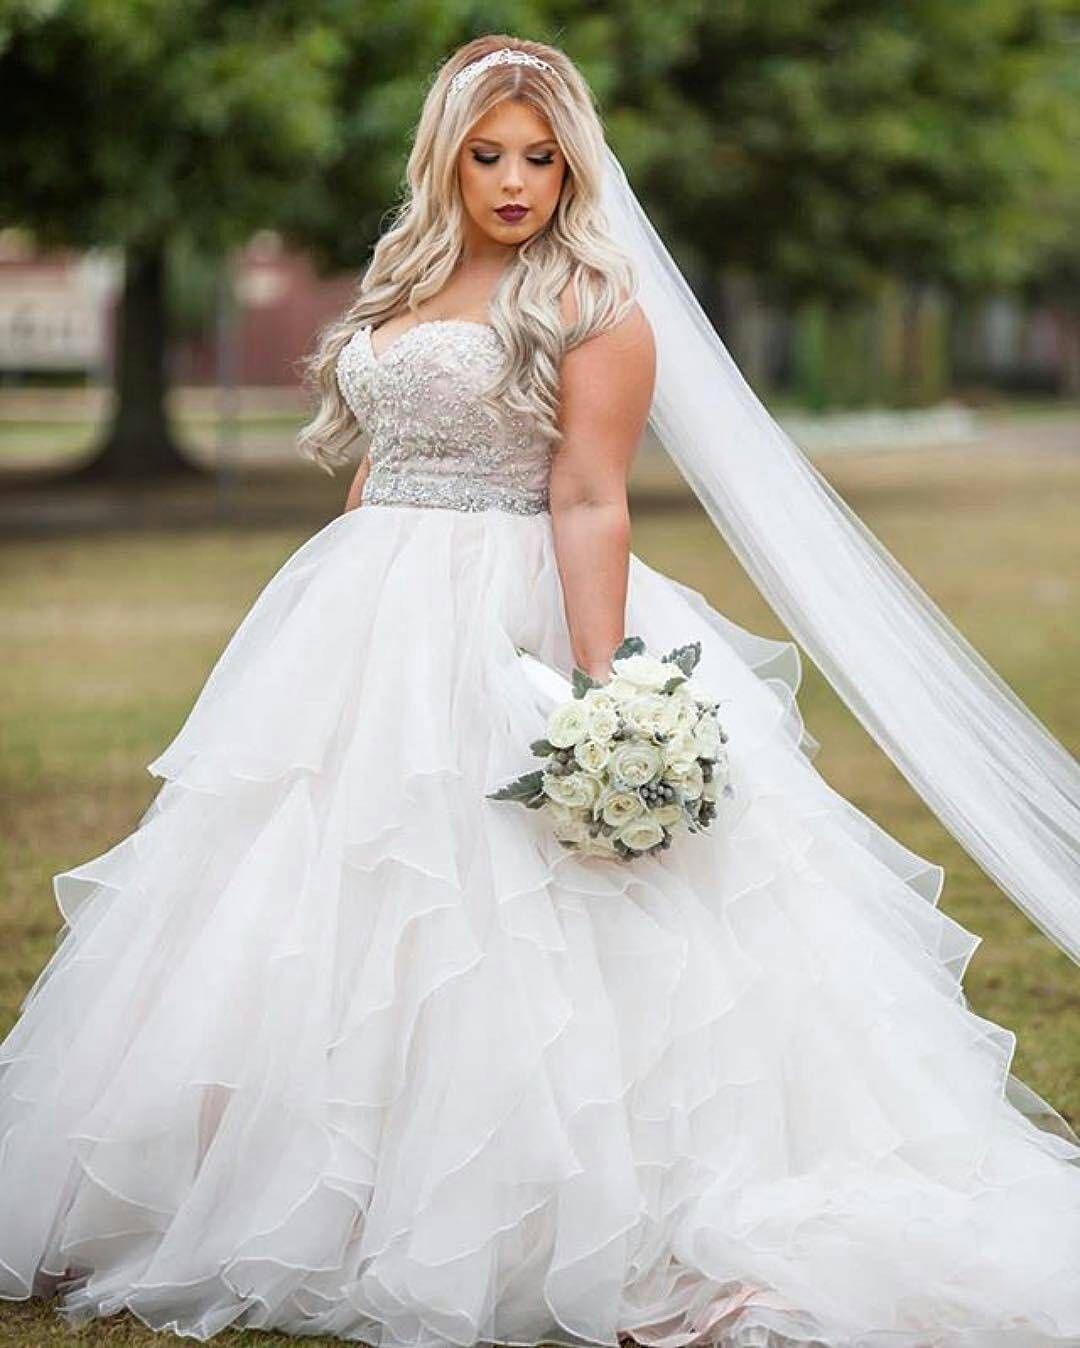 Custom plus size wedding dresses pinterest dressmaker for Plus size wedding dresses online usa